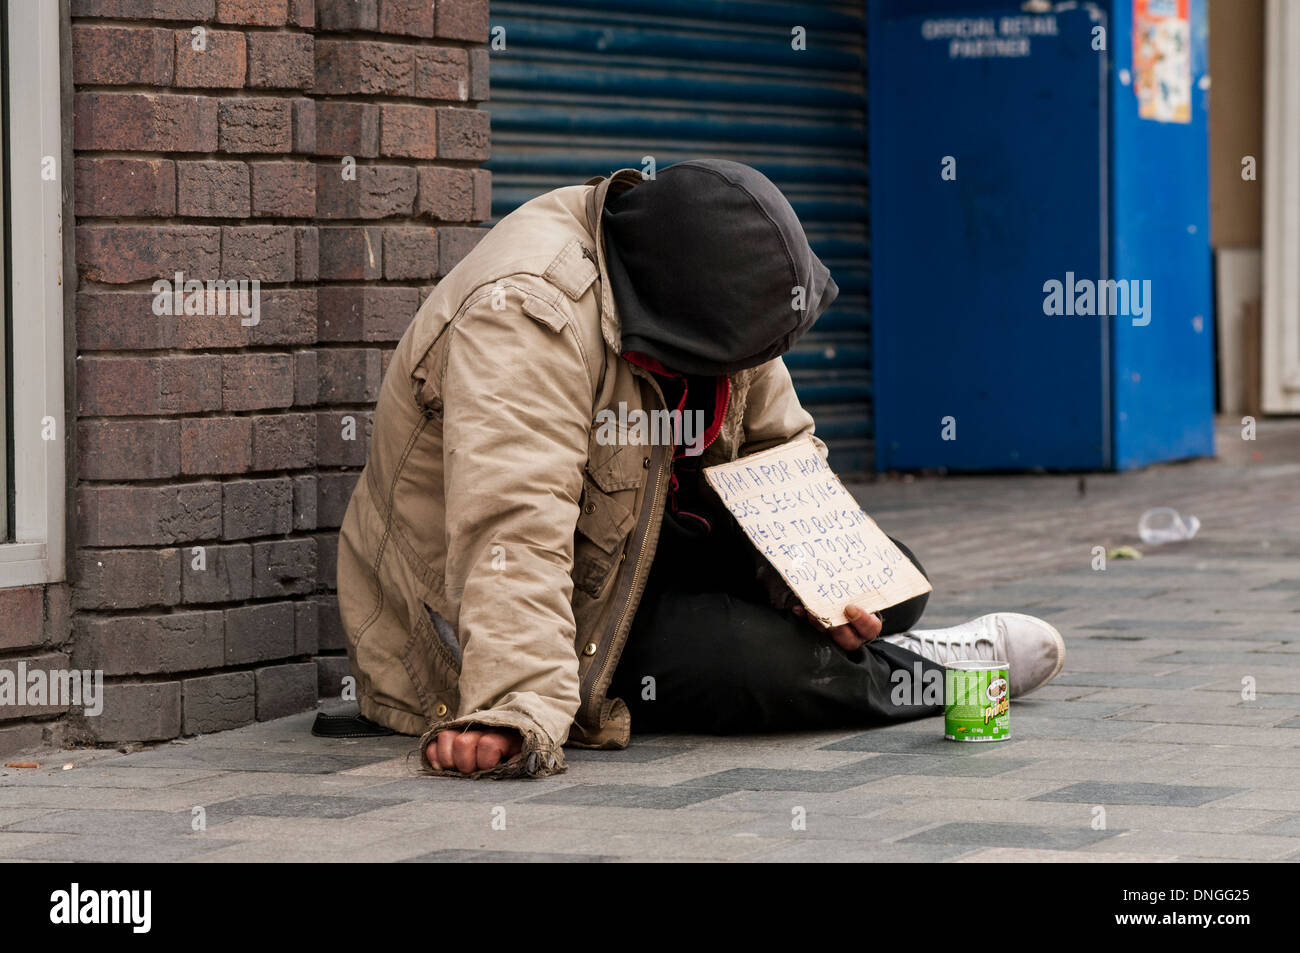 Homeless man begging on Sauchihall Street in Glasgow, Scotland, UK. He is sitting next to a shop that has been closed down. - Stock Image